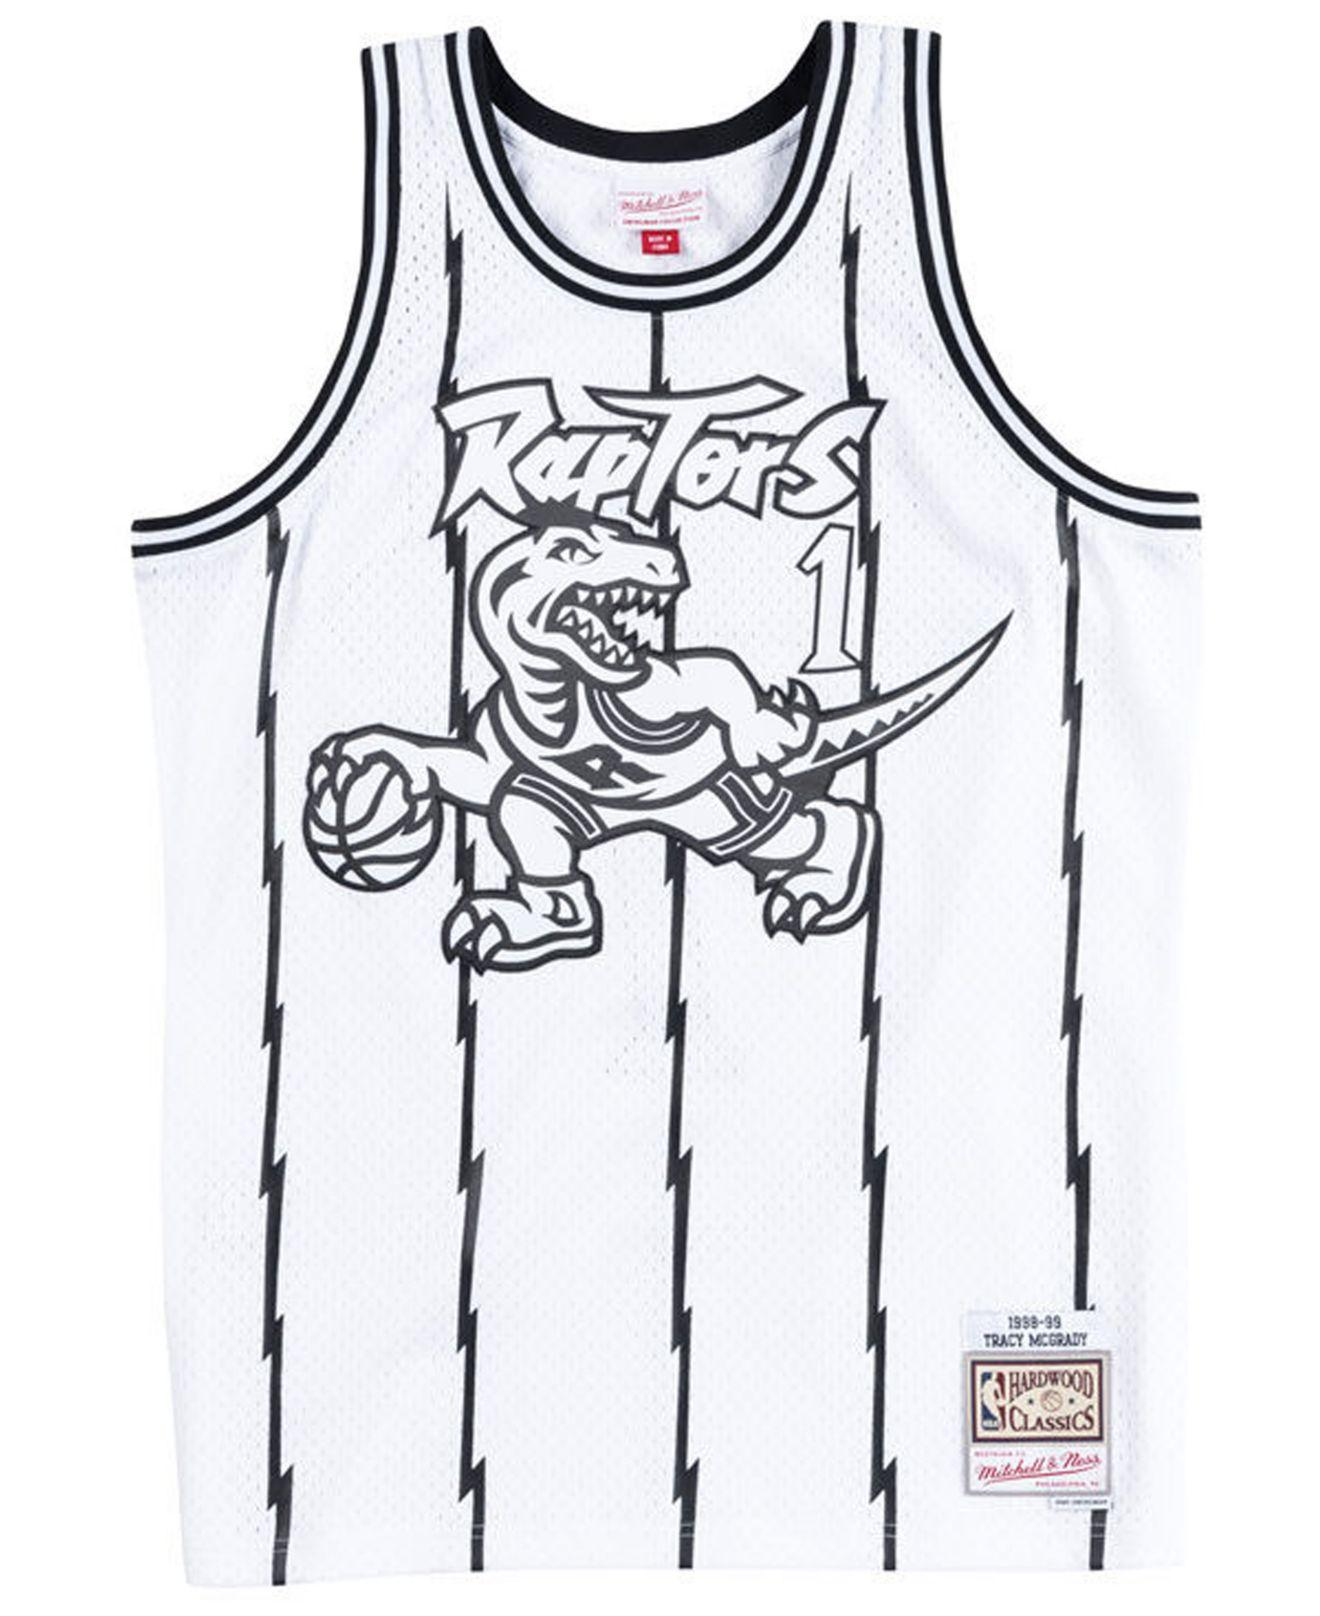 415dfd4ff8b Mitchell & Ness - White Tracy Mcgrady Toronto Raptors Concord Collection Swingman  Jersey for Men -. View fullscreen